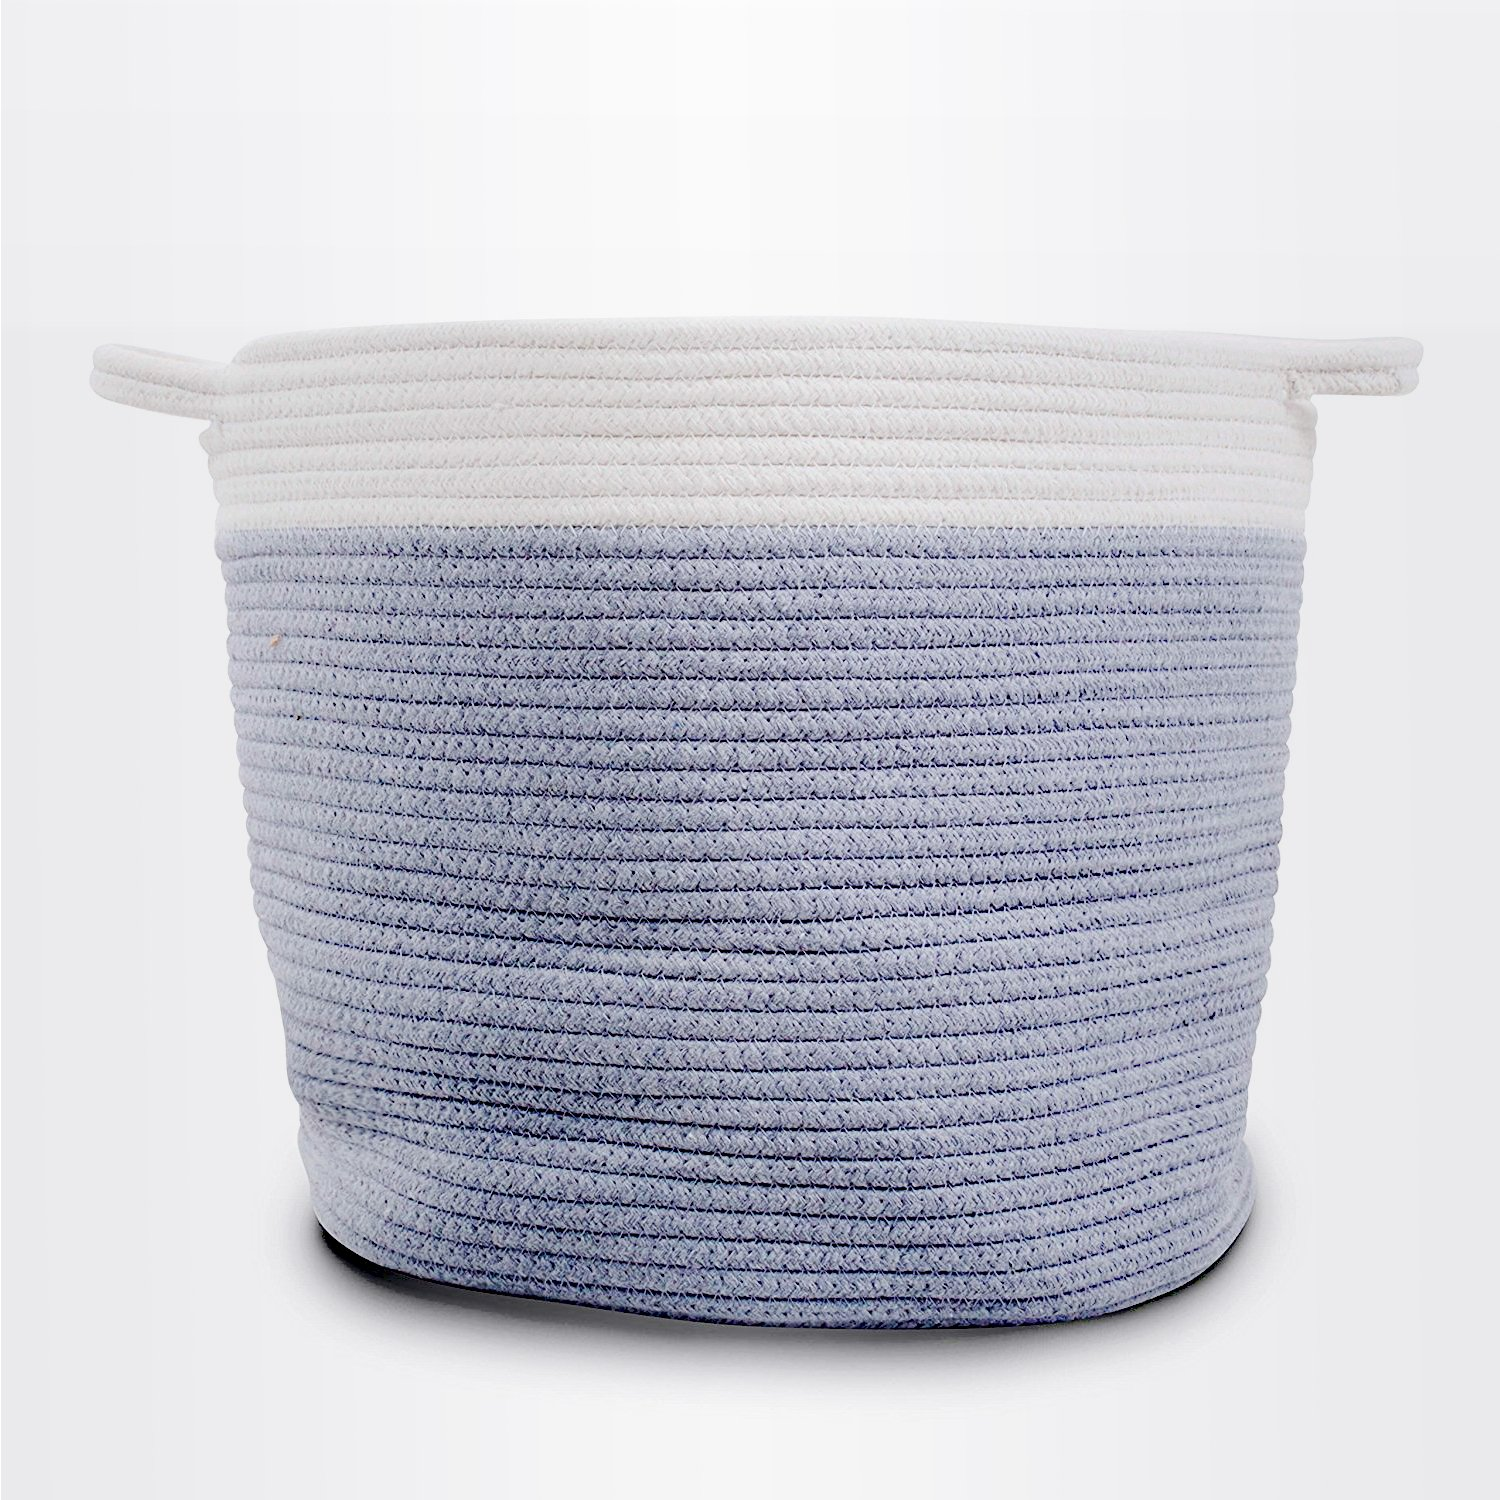 Extra Large Storage Cotton Rope Basket with Handles - for Laundry, Bathrooms, Kids and Baby Storage, Toys, Home Decor, Organization 15'' x 14'' I Light Grey and White Color with Clean Stitching